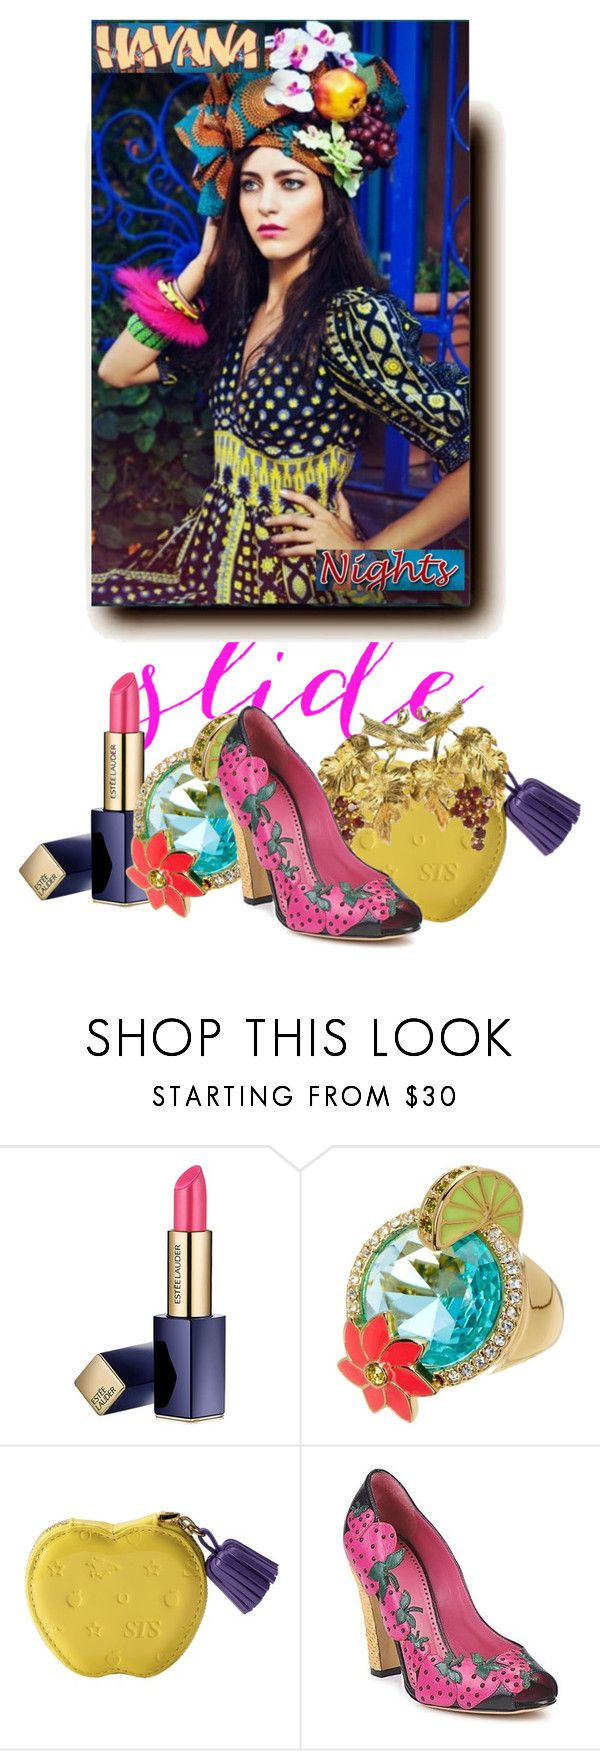 """Invited me to a Havana Nights party #1."" by babysnail ❤ liked on Polyvore featuring Estée Lauder, Kate Spade and Moschino Cheap & Chic"